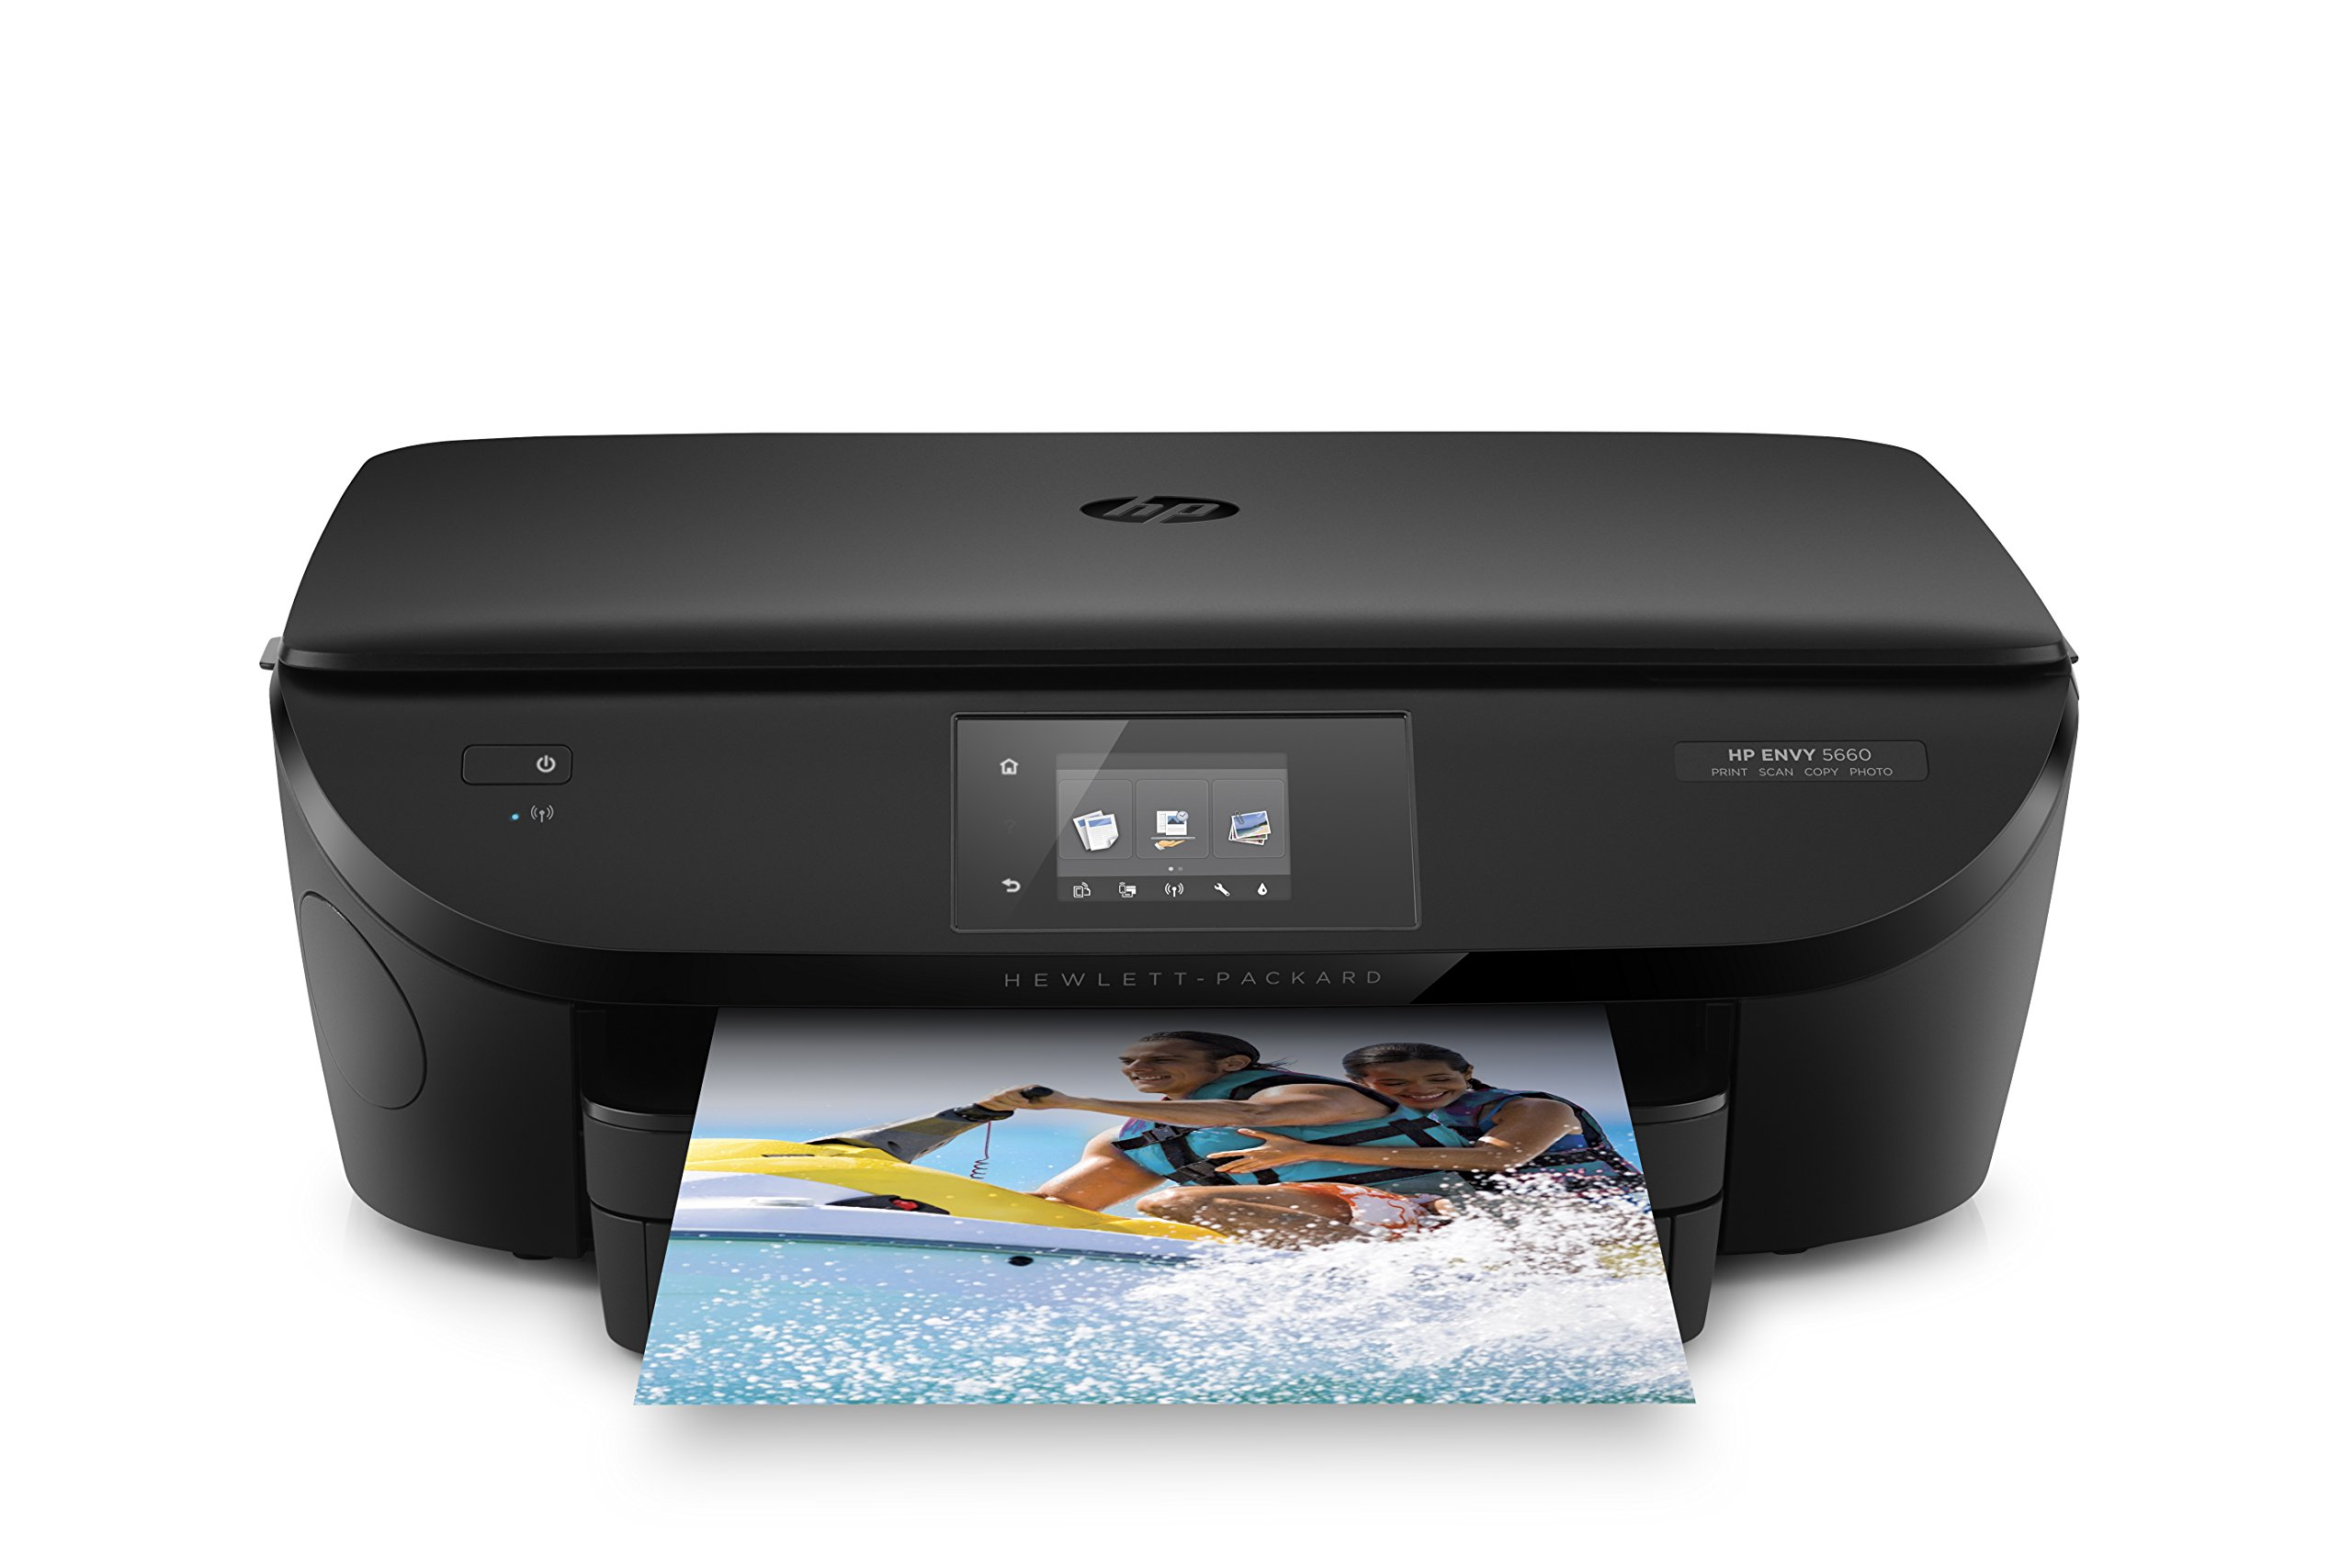 HP ENVY 5660 Wireless All-in-One Photo Printer with Mobile Printing, HP Instant Ink & Amazon Dash Replenishment ready (F8B04A)